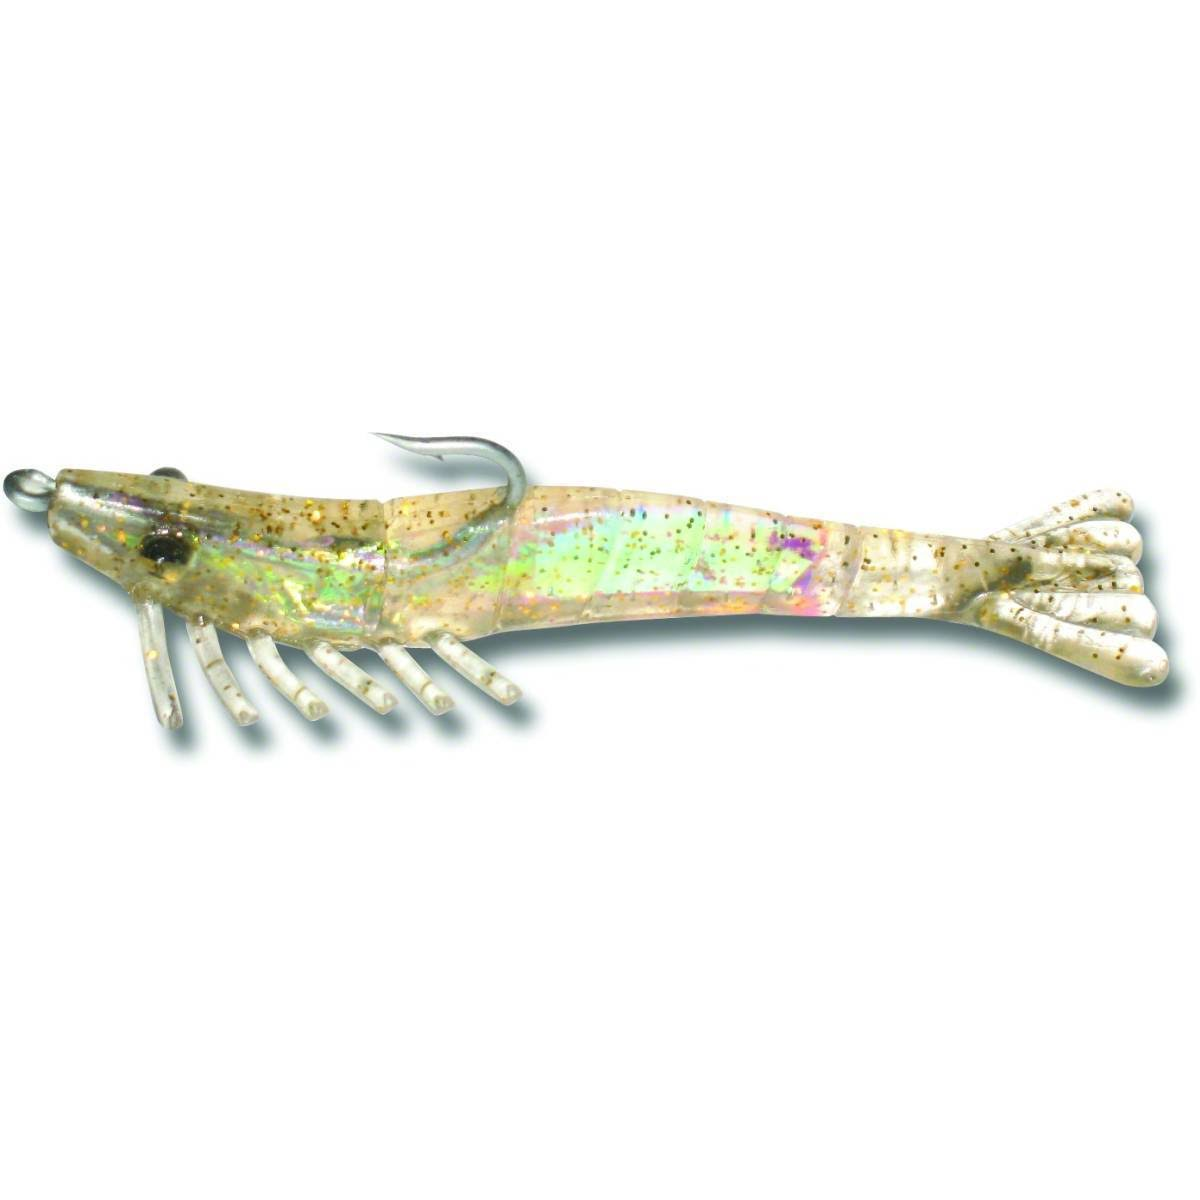 Billy Bay 772-4-3-2 Halo Shrimp Fishing Lures - 1/4oz, Clear Gold Sparkle, 3pk